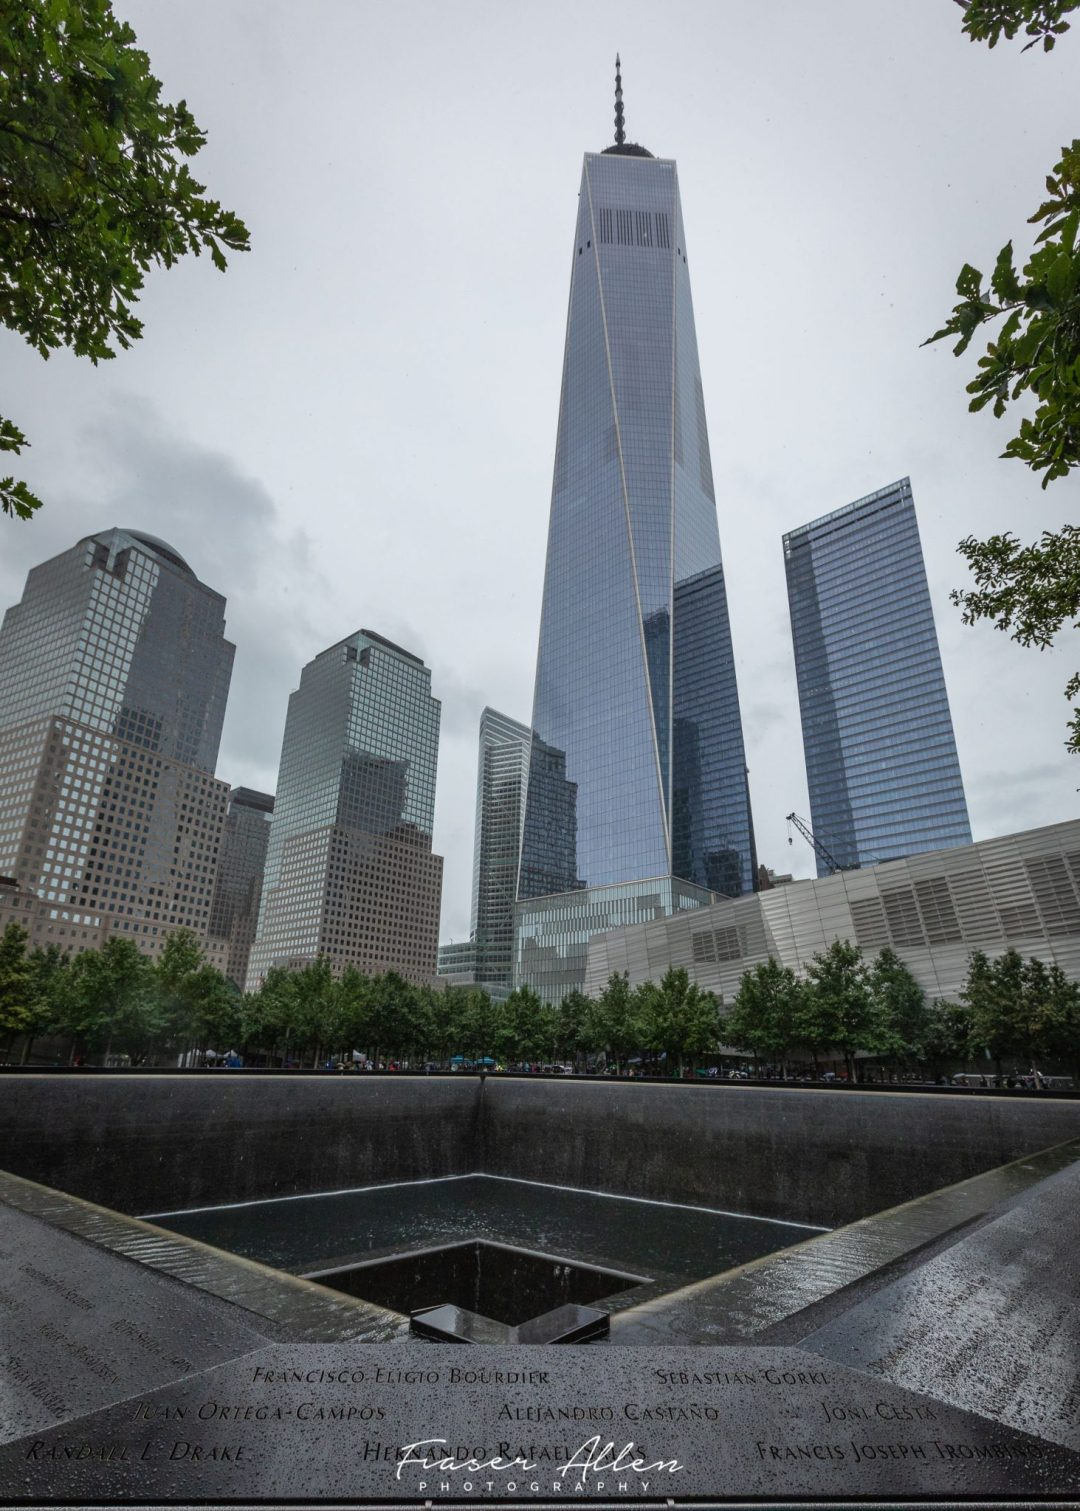 One of the 9-11 memorial pools